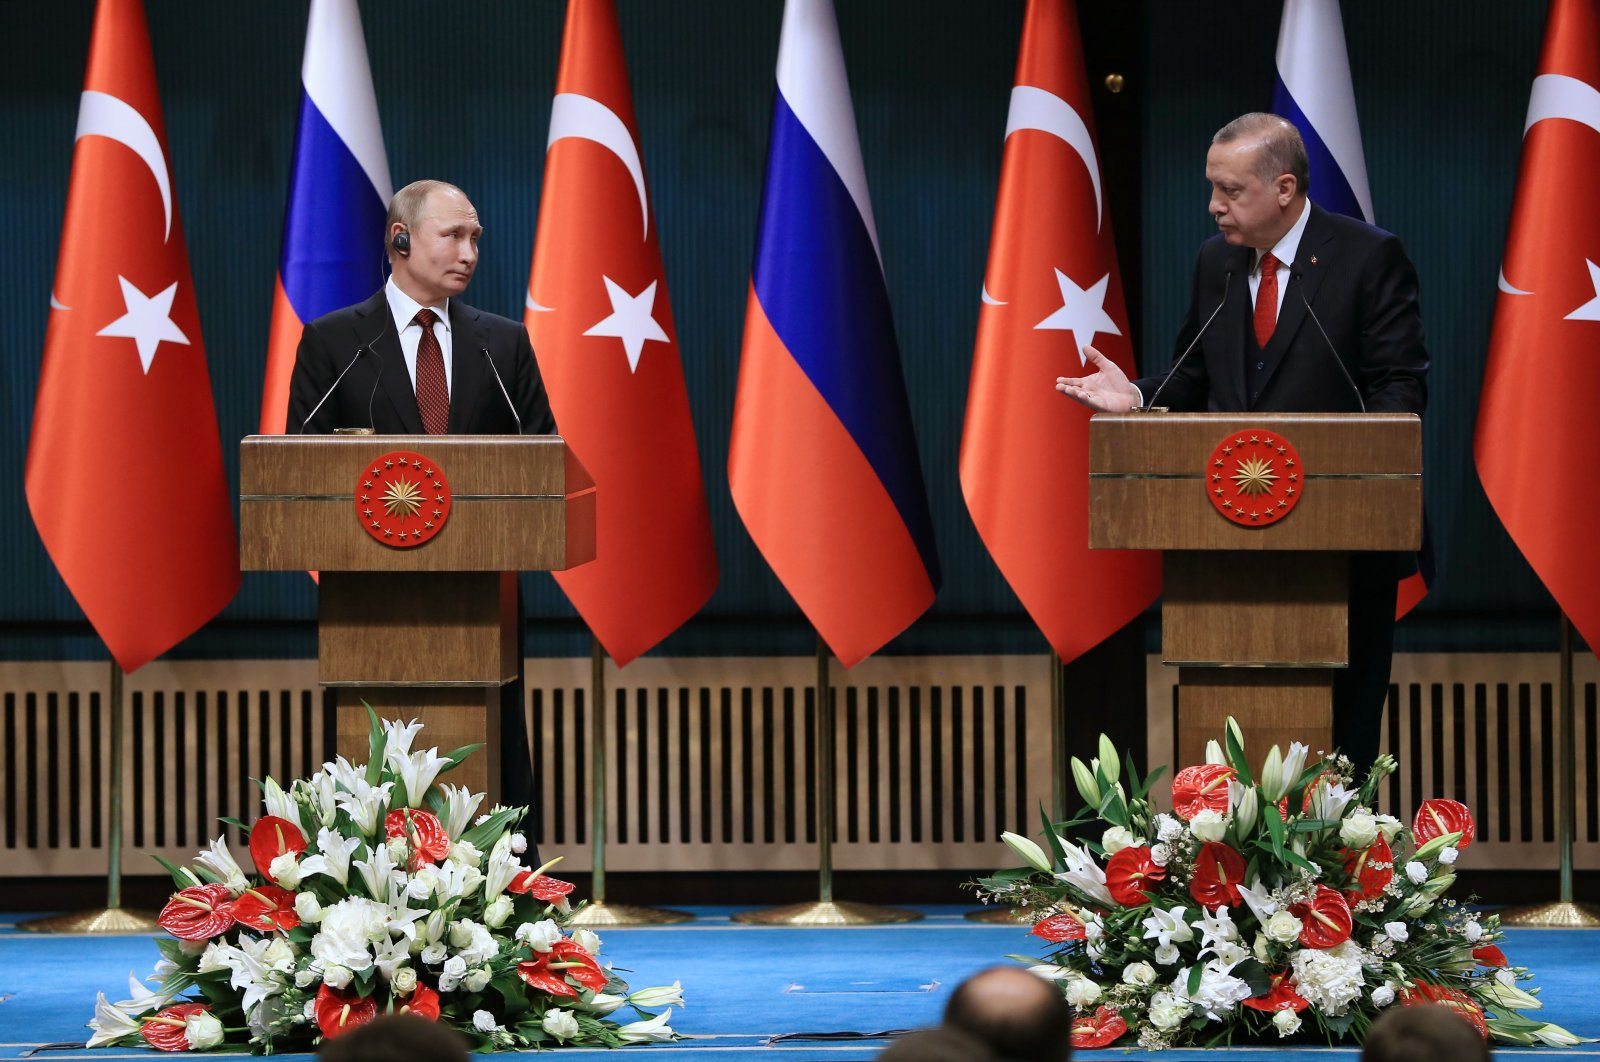 President Recep Tayyip Erdoğan and his Russian President Vladimir Putin in a joint press conference in Ankara, Turkey, April 3, 2018. (Photo courtesy of the Presidency)